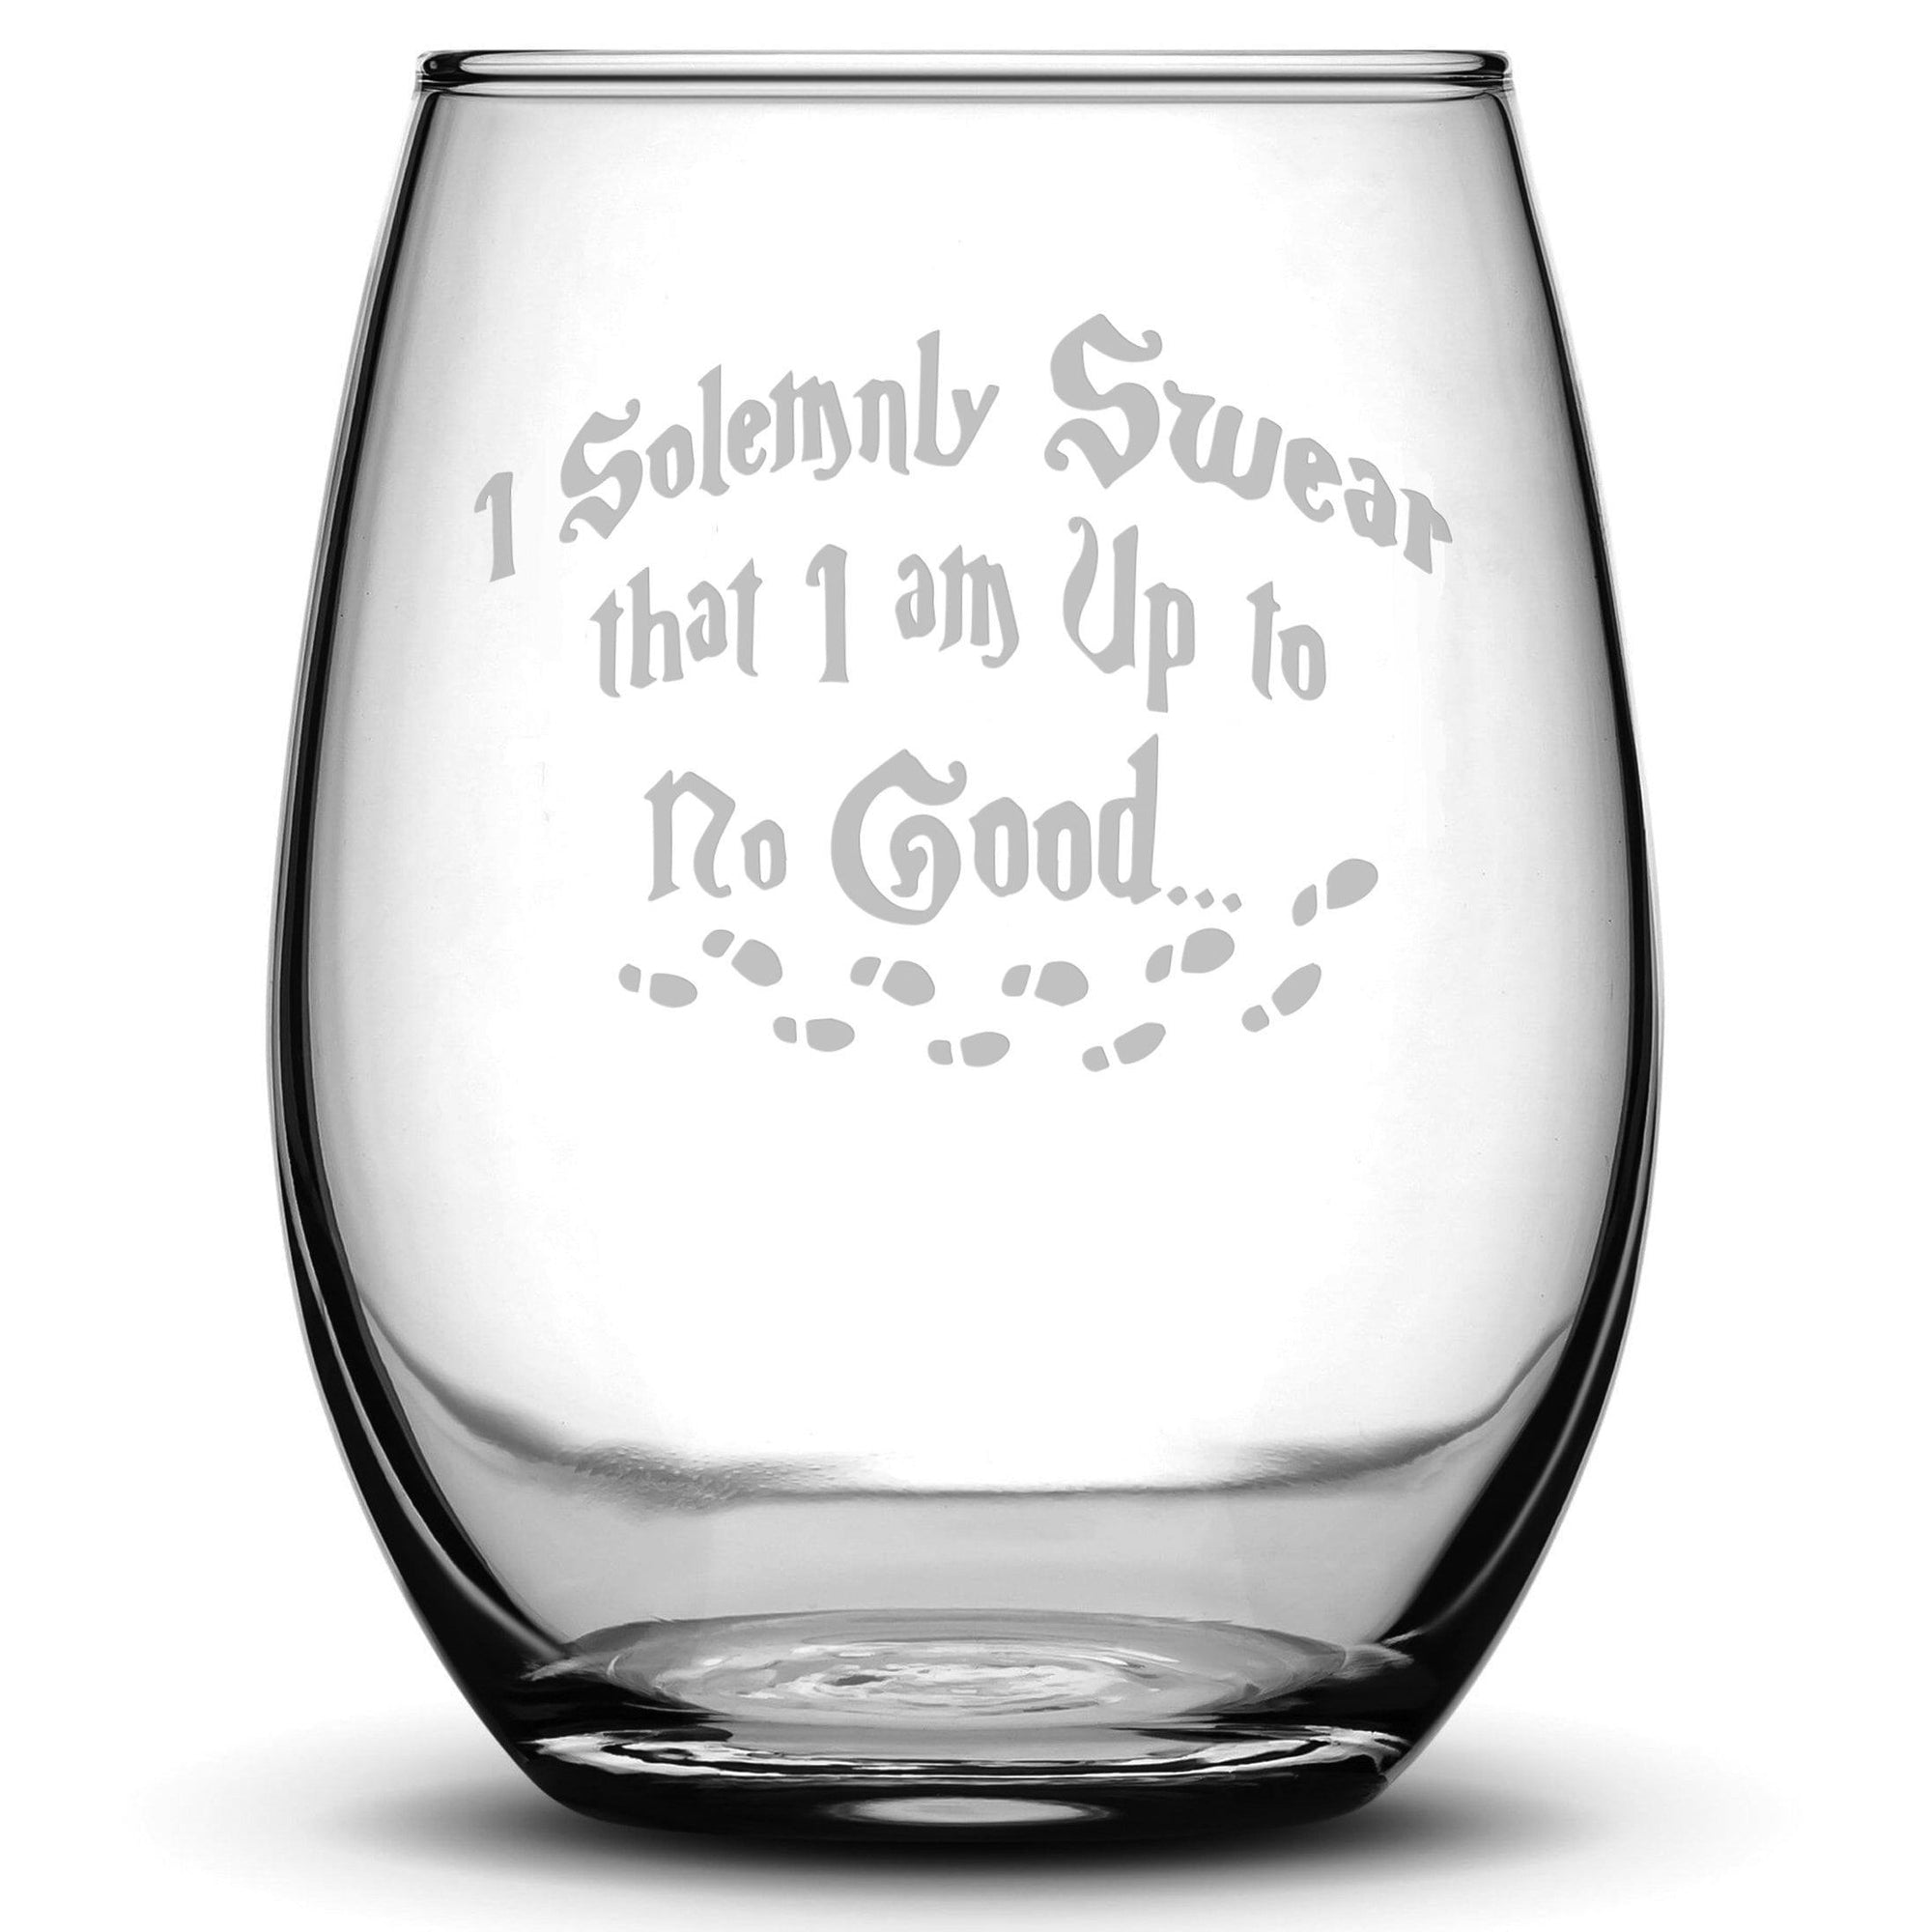 Premium Wine Glass, Harry Potter, I Solemnly Swear that I am Up to No Good, 15oz Integrity Bottles